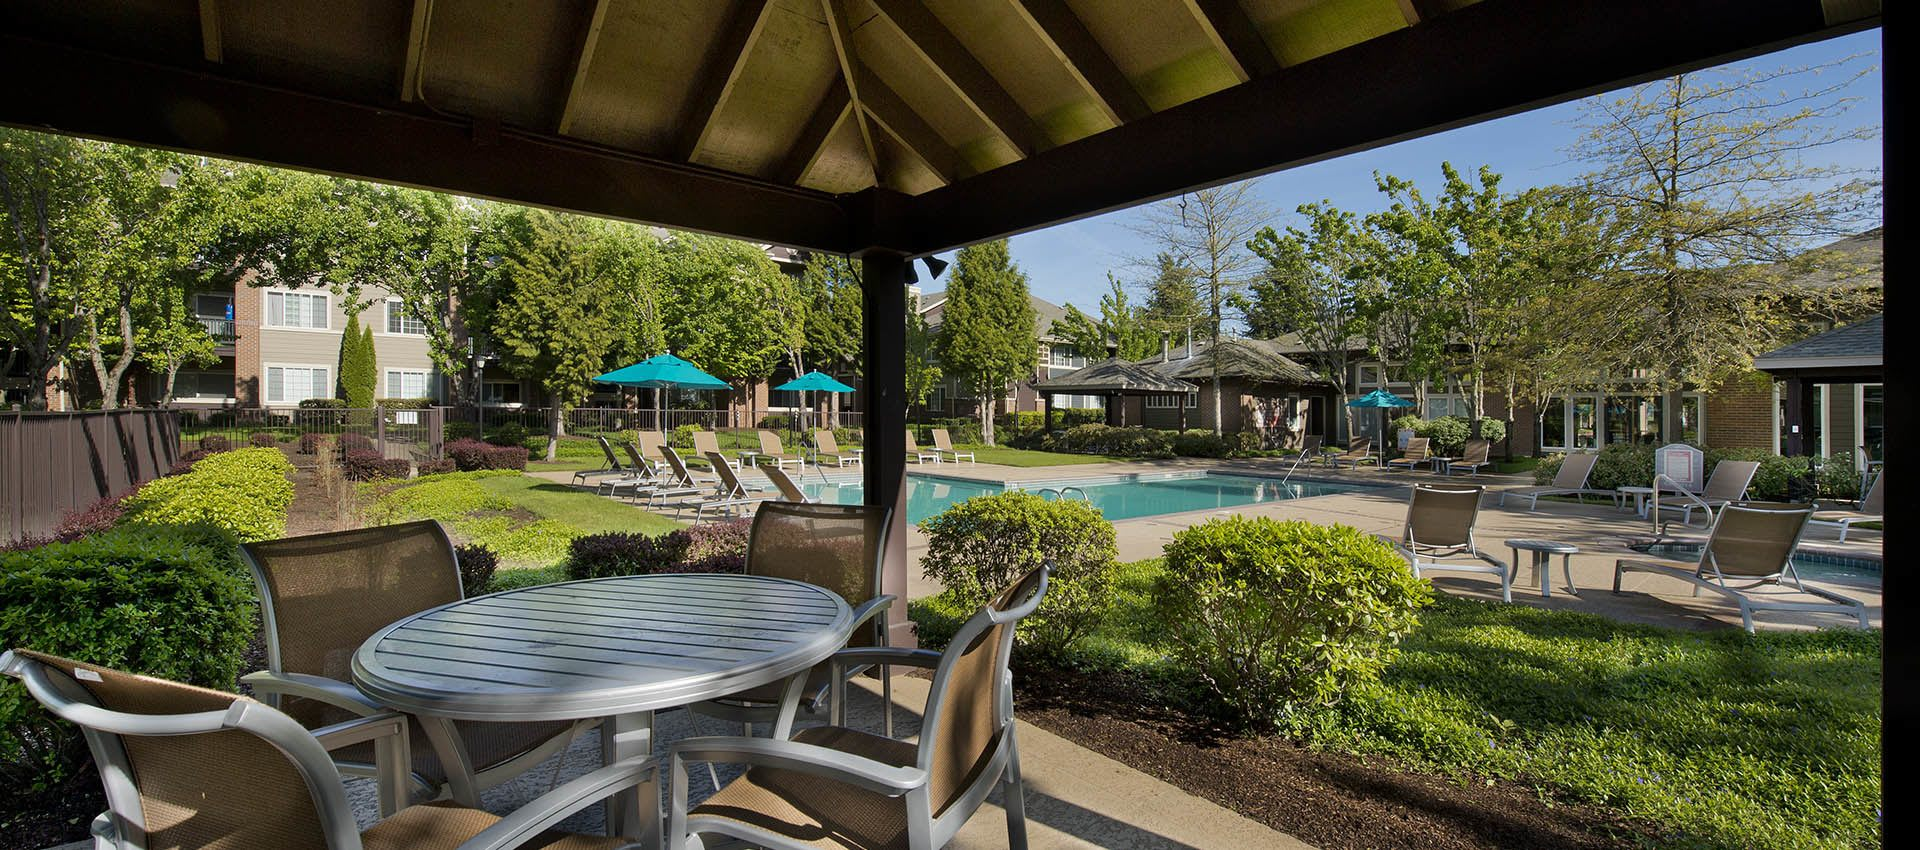 Poolside Cabanas at Cortland Village Apartment Homes in Hillsboro